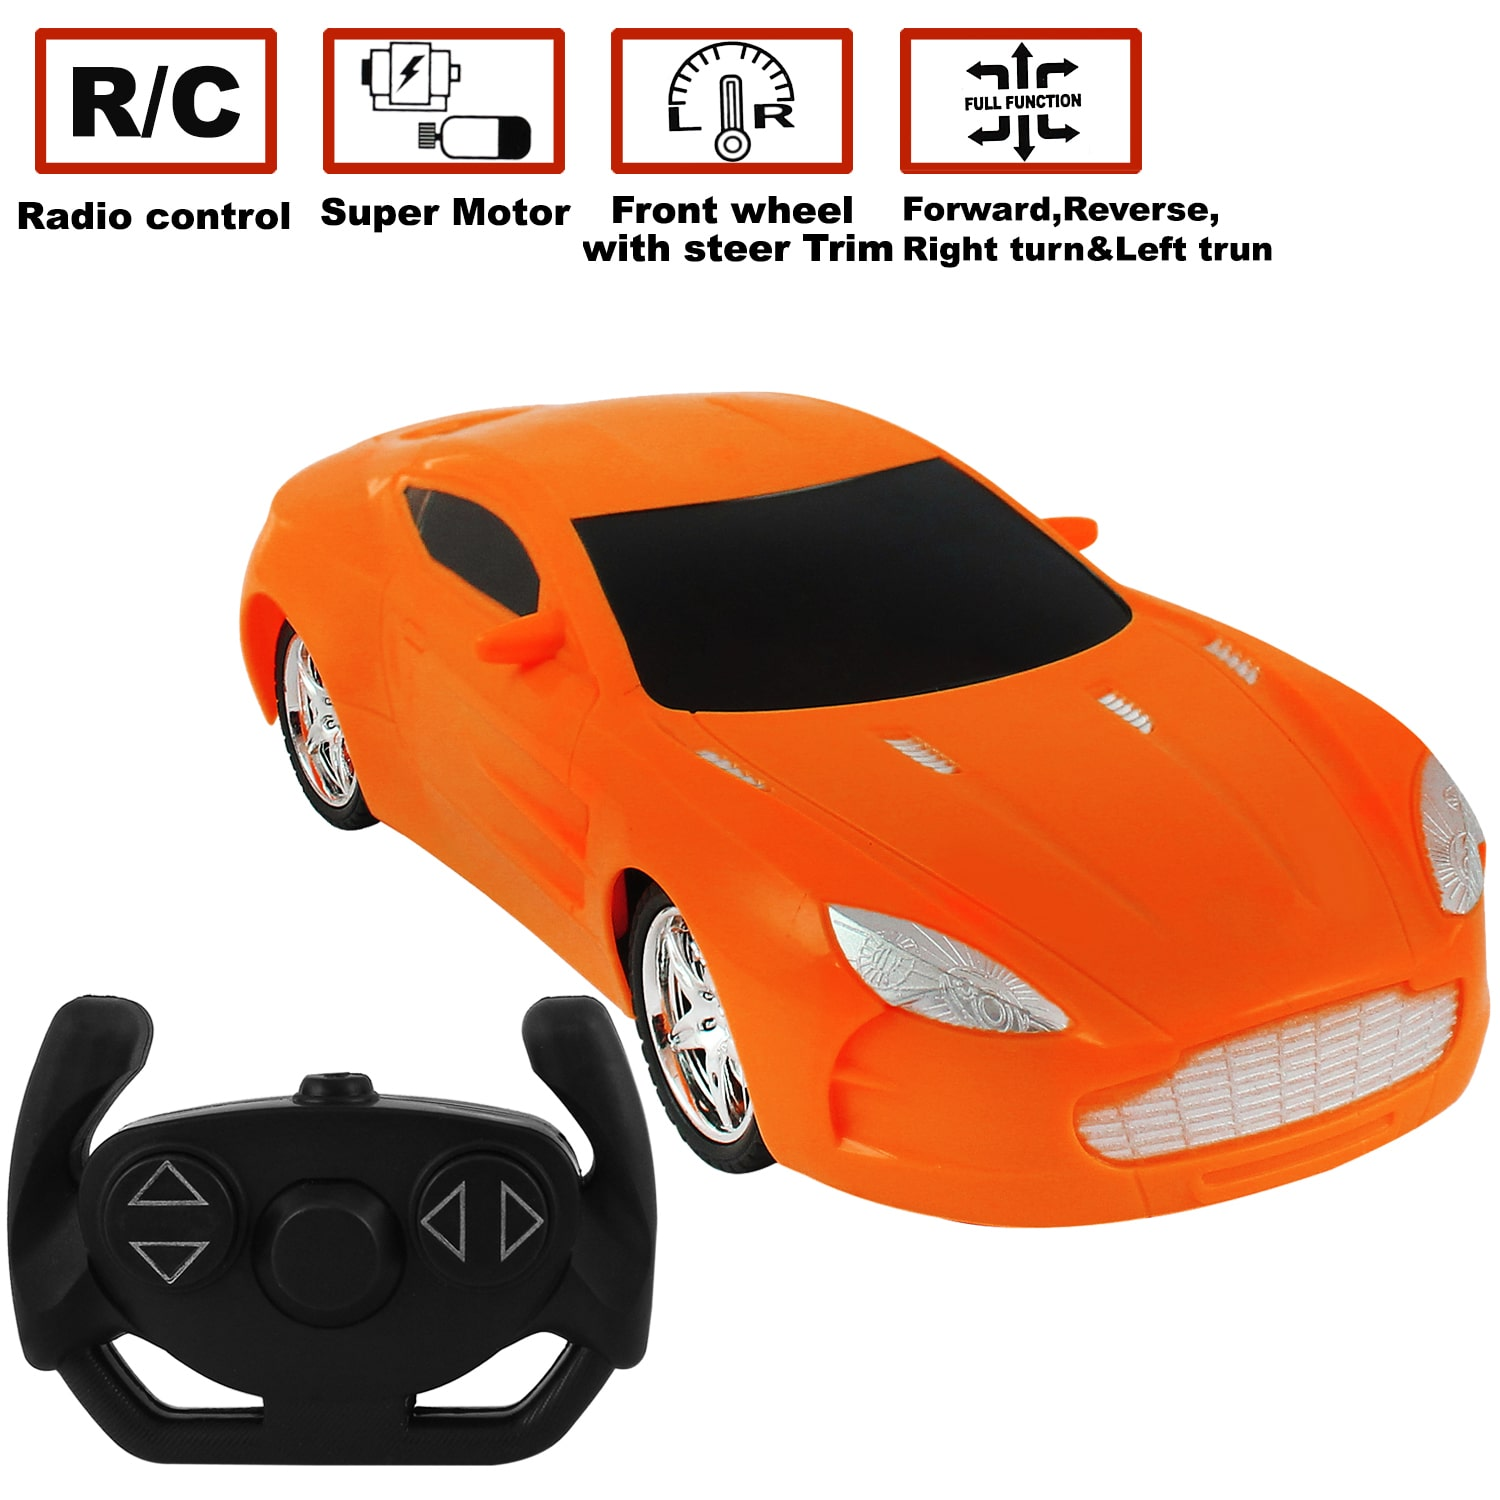 Remote Control Car Four Way High Speed | Right Left Backward and Forward Direction | 22 cms Length | Kids...